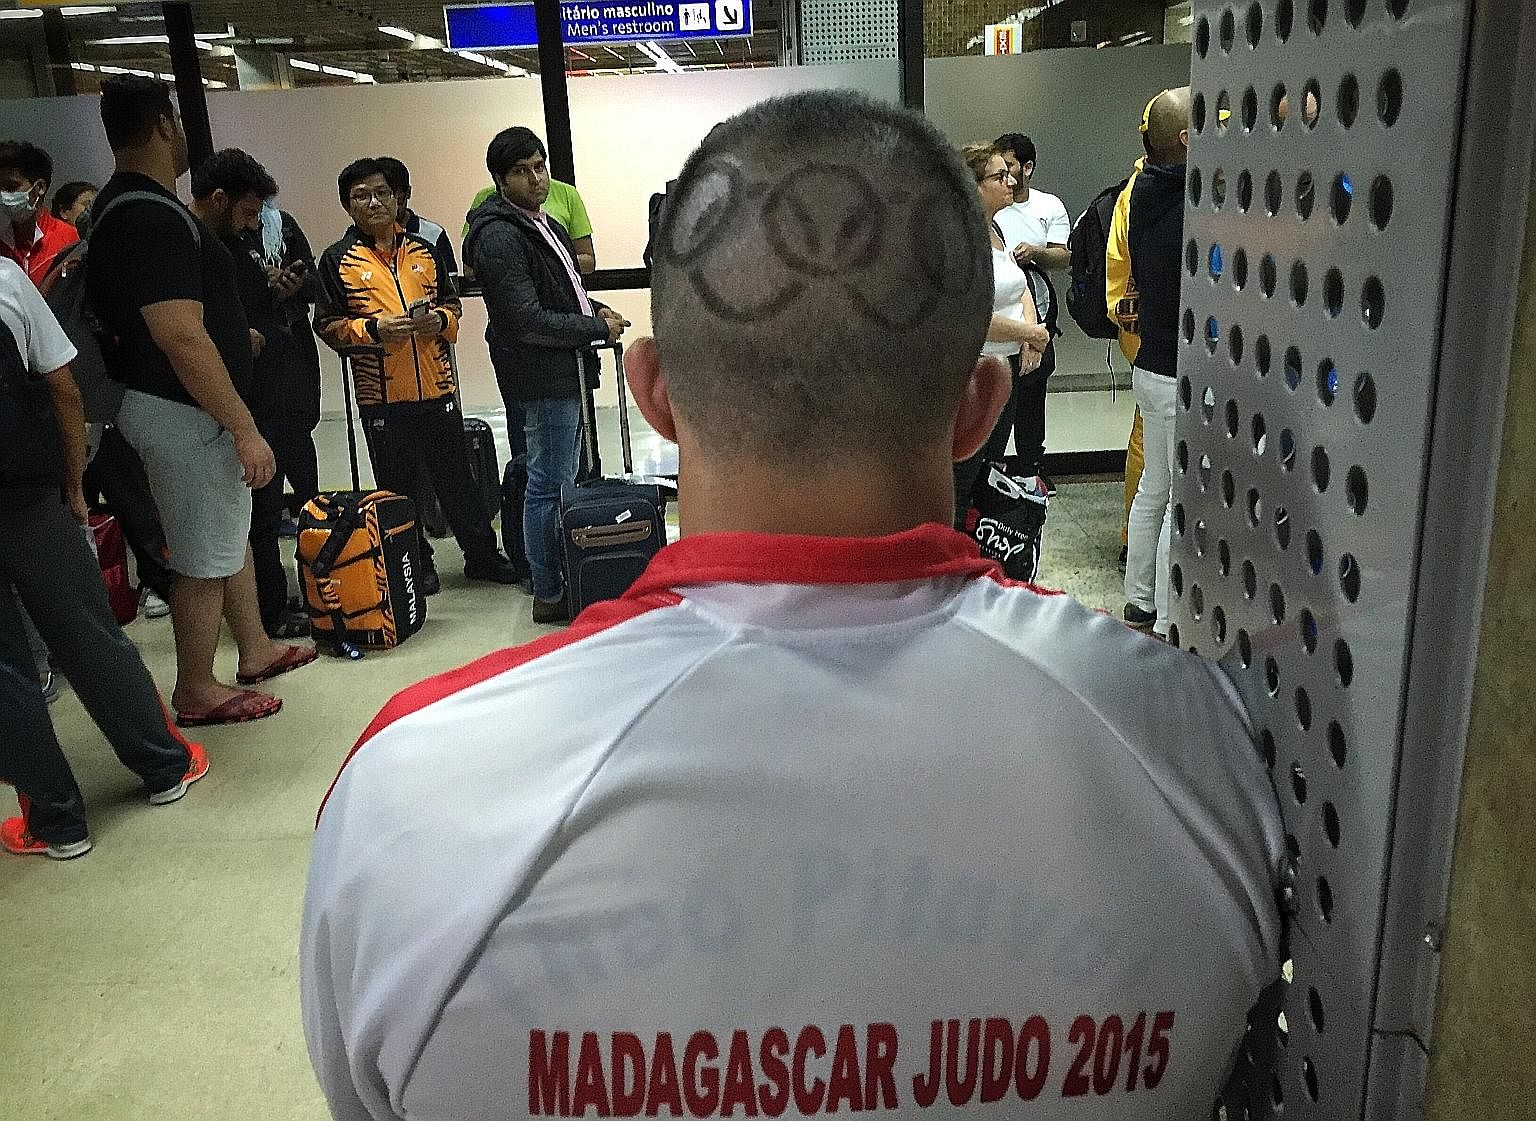 A Rio-bound Madagascar judo coach sports a haircut showing the Olympic logo as he waits in the boarding lounge at the Sao Paulo-Guarulhos International Airport.